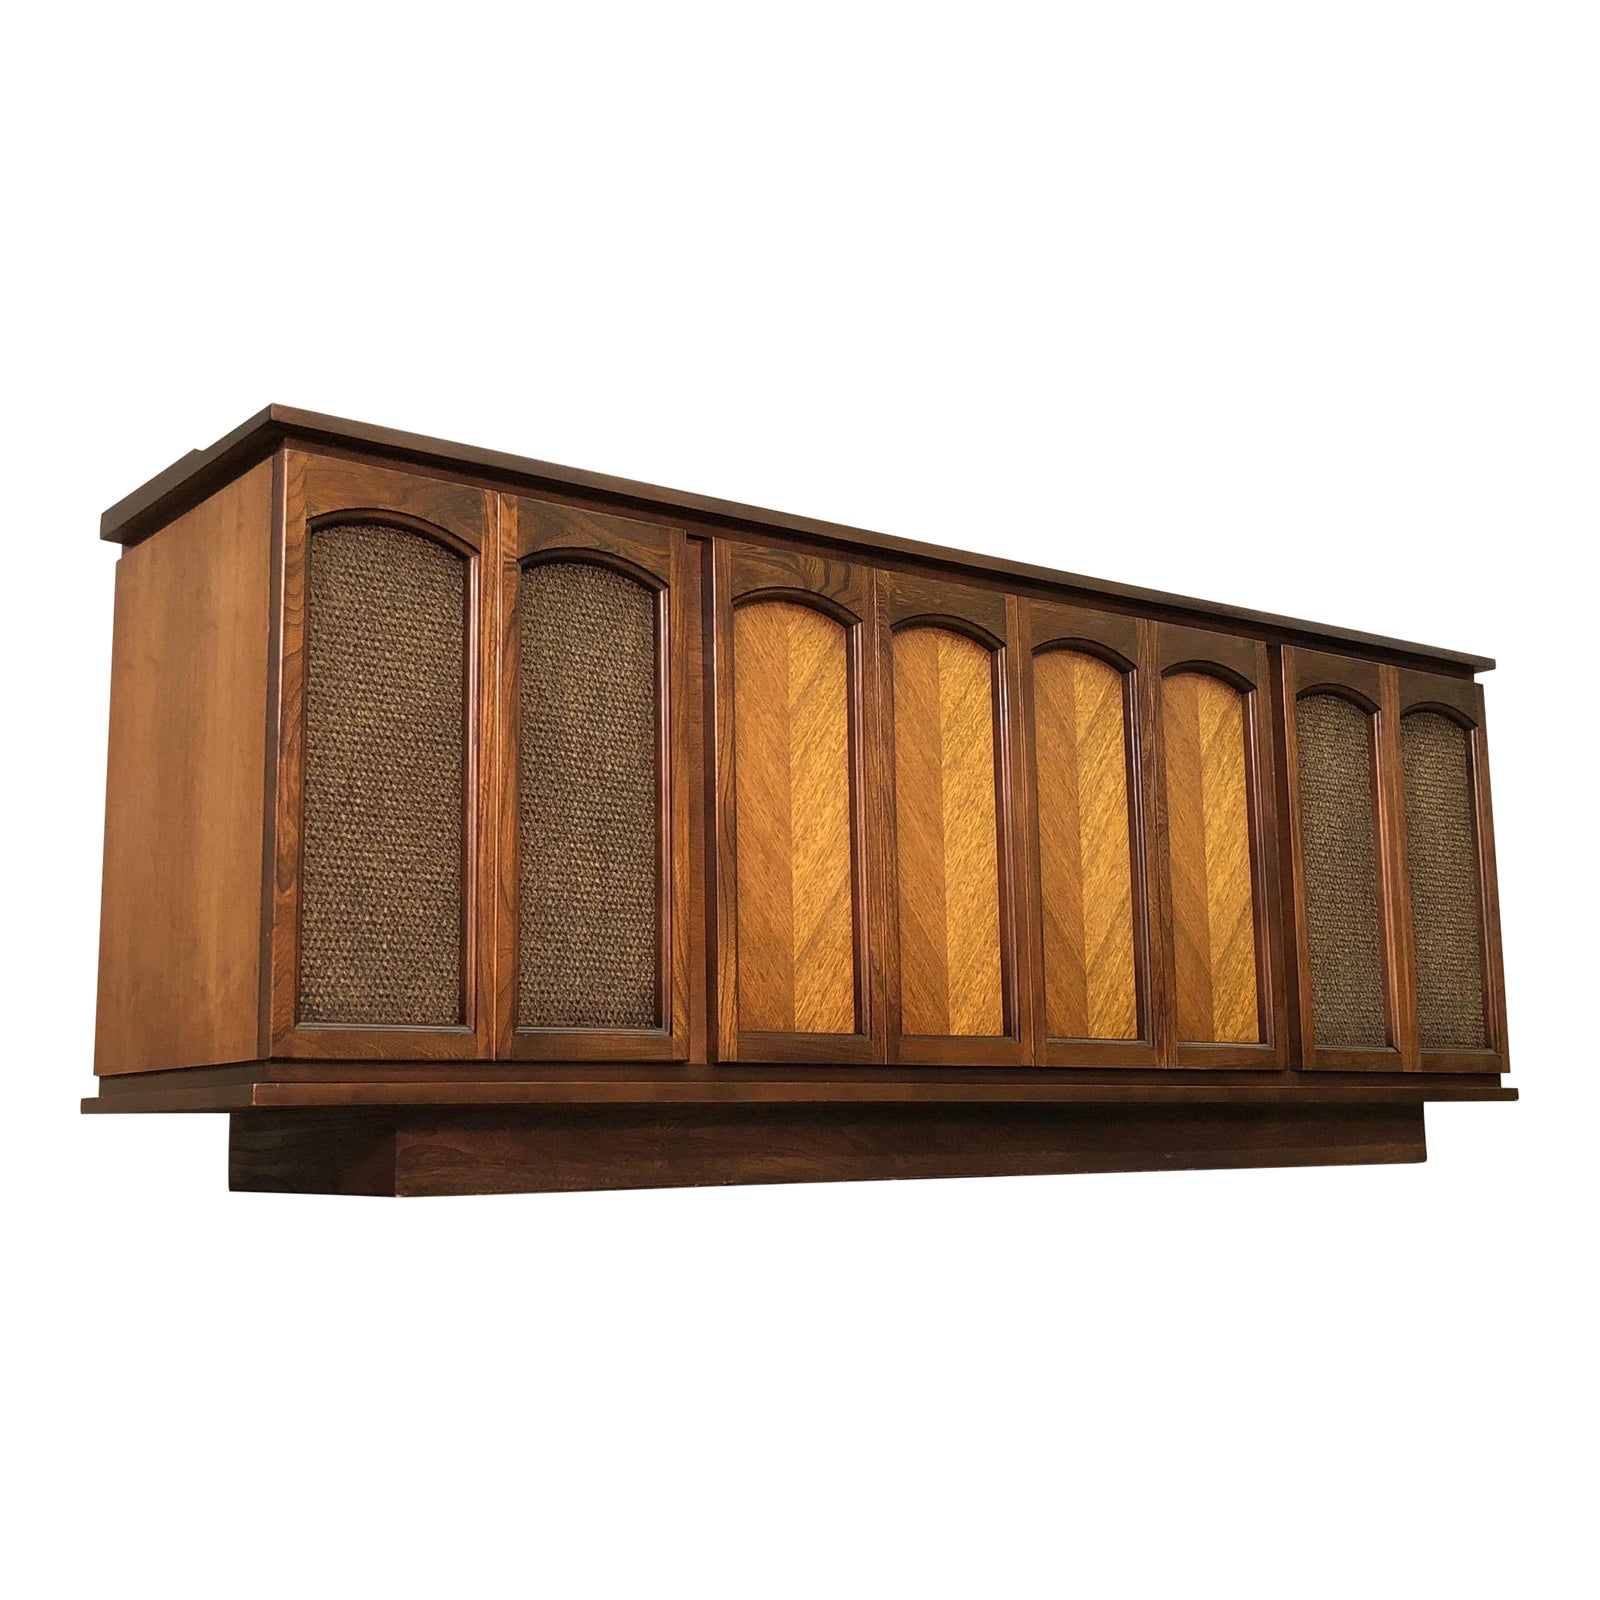 Rca stereo console models